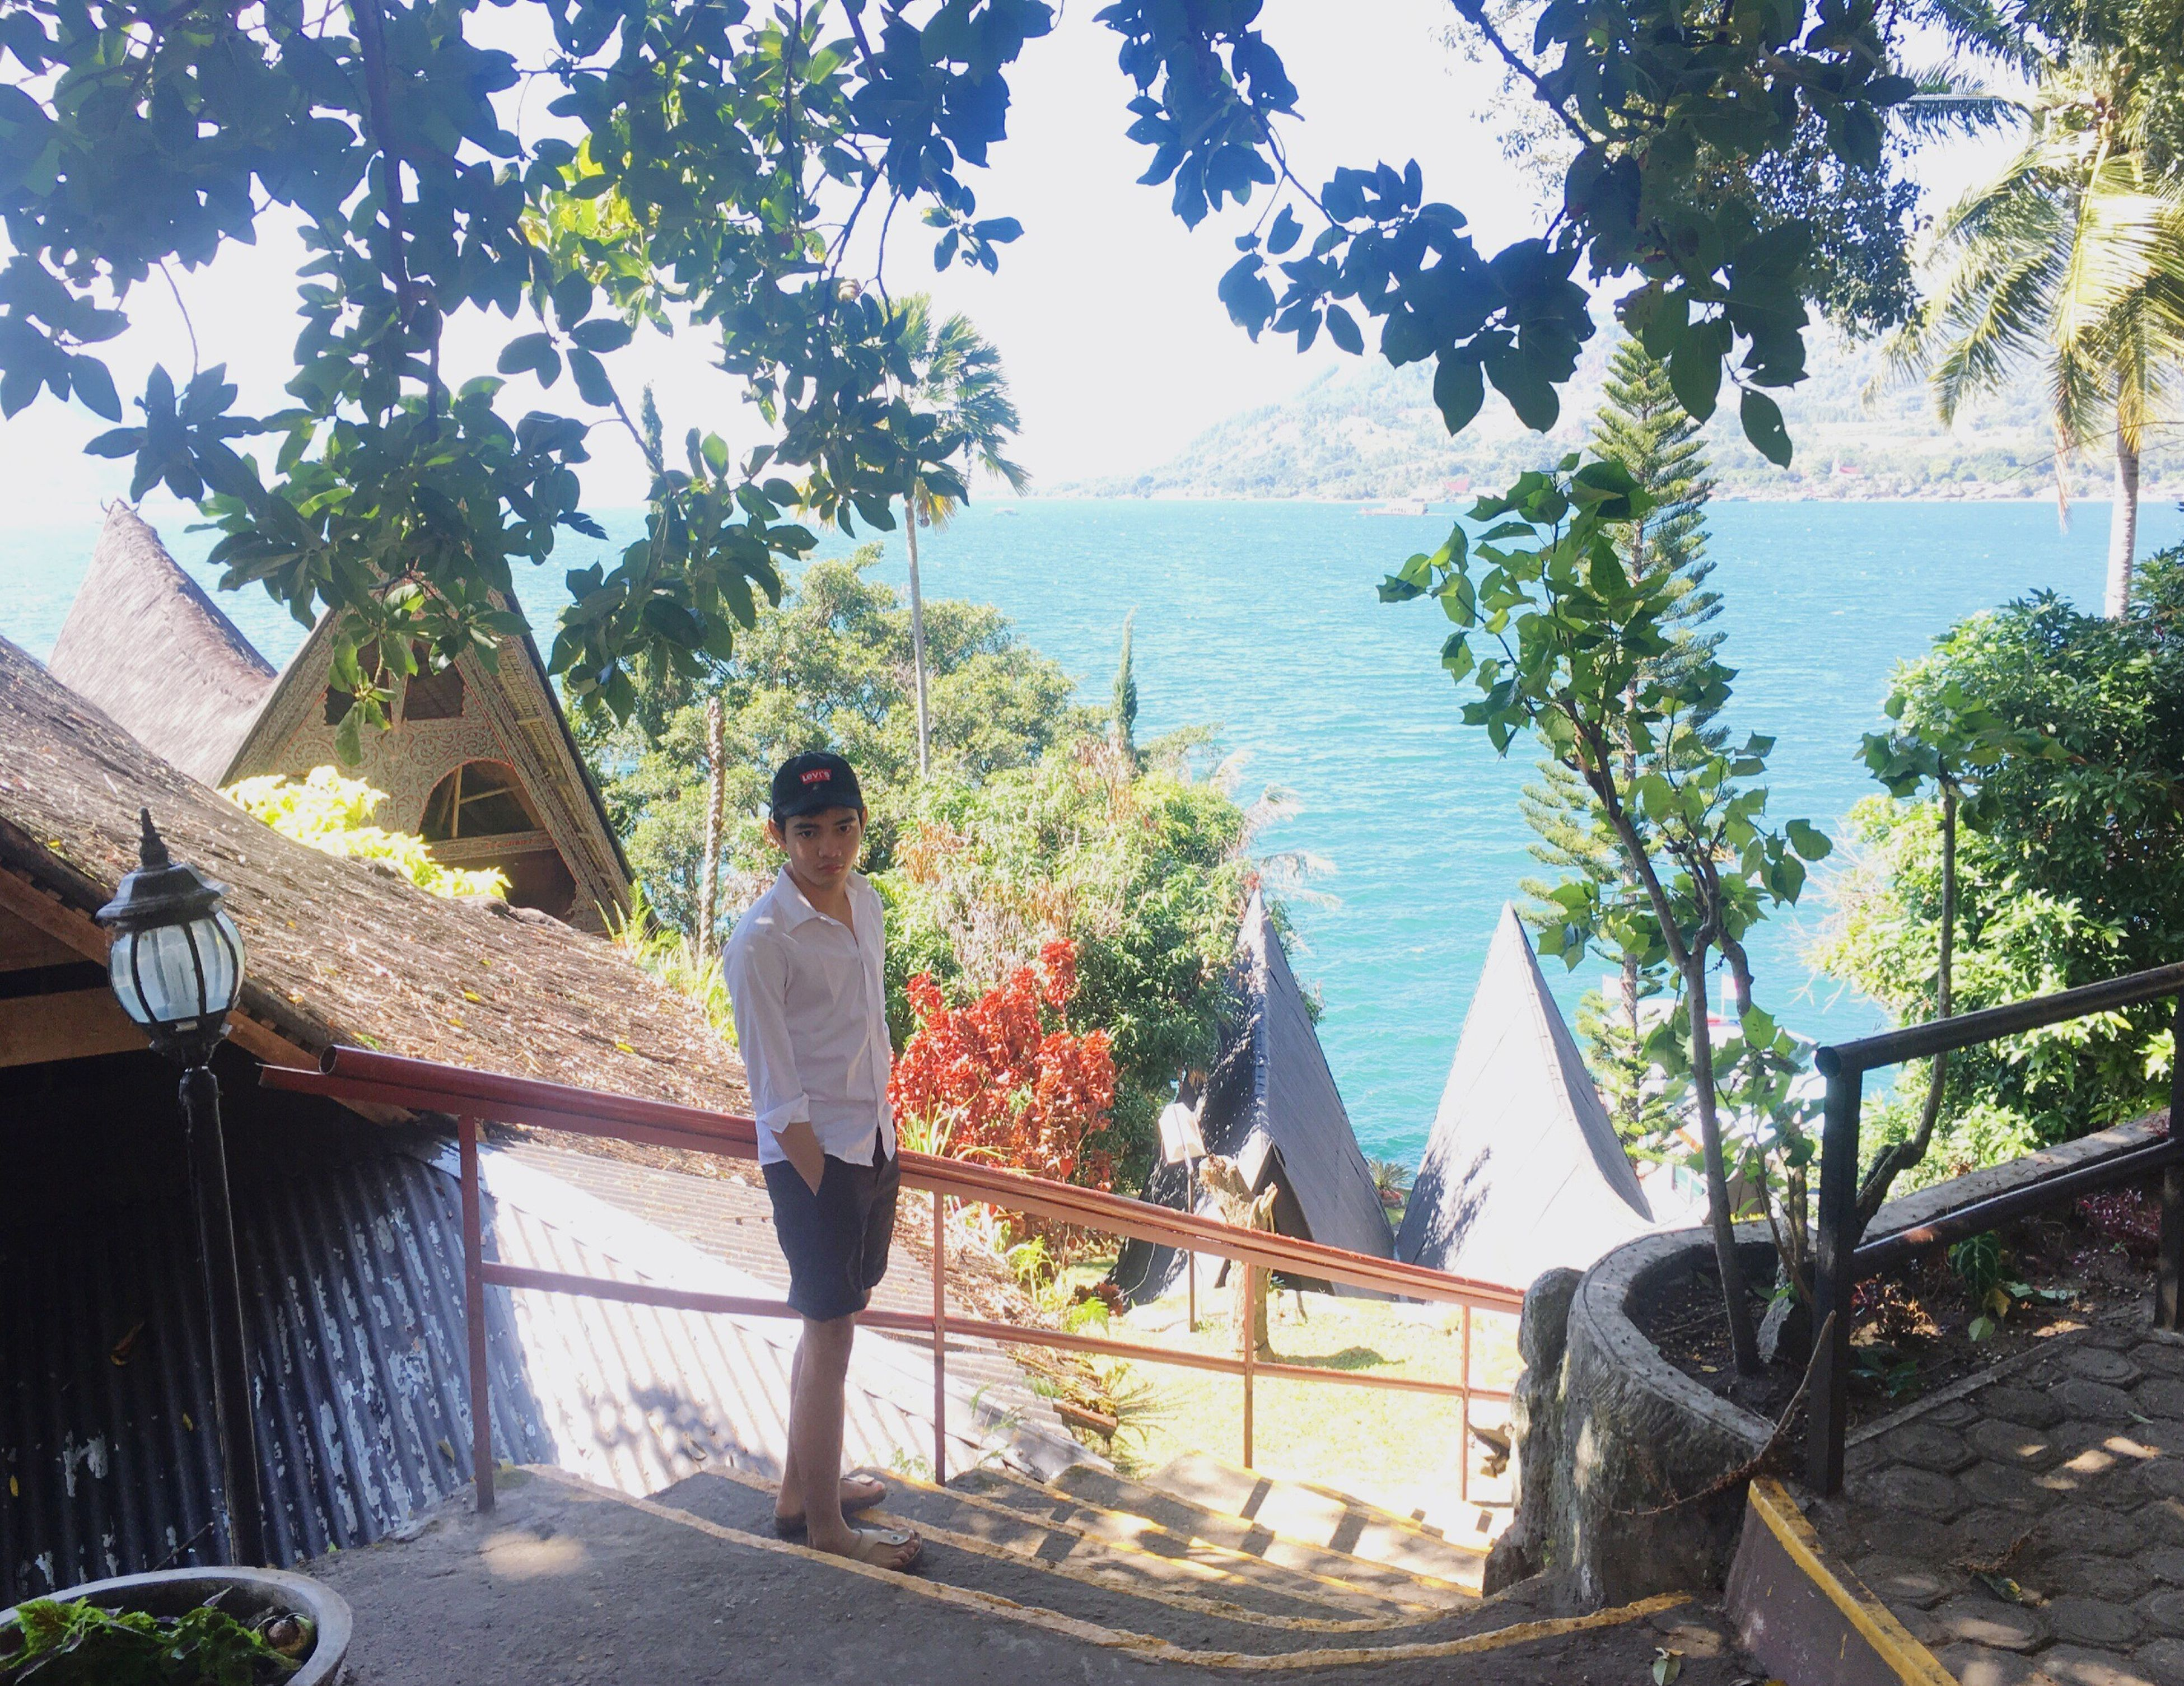 tree, sea, water, rear view, full length, railing, casual clothing, tranquil scene, day, plant, vacations, tranquility, branch, scenics, nature, growth, outdoors, tourism, remote, solitude, green color